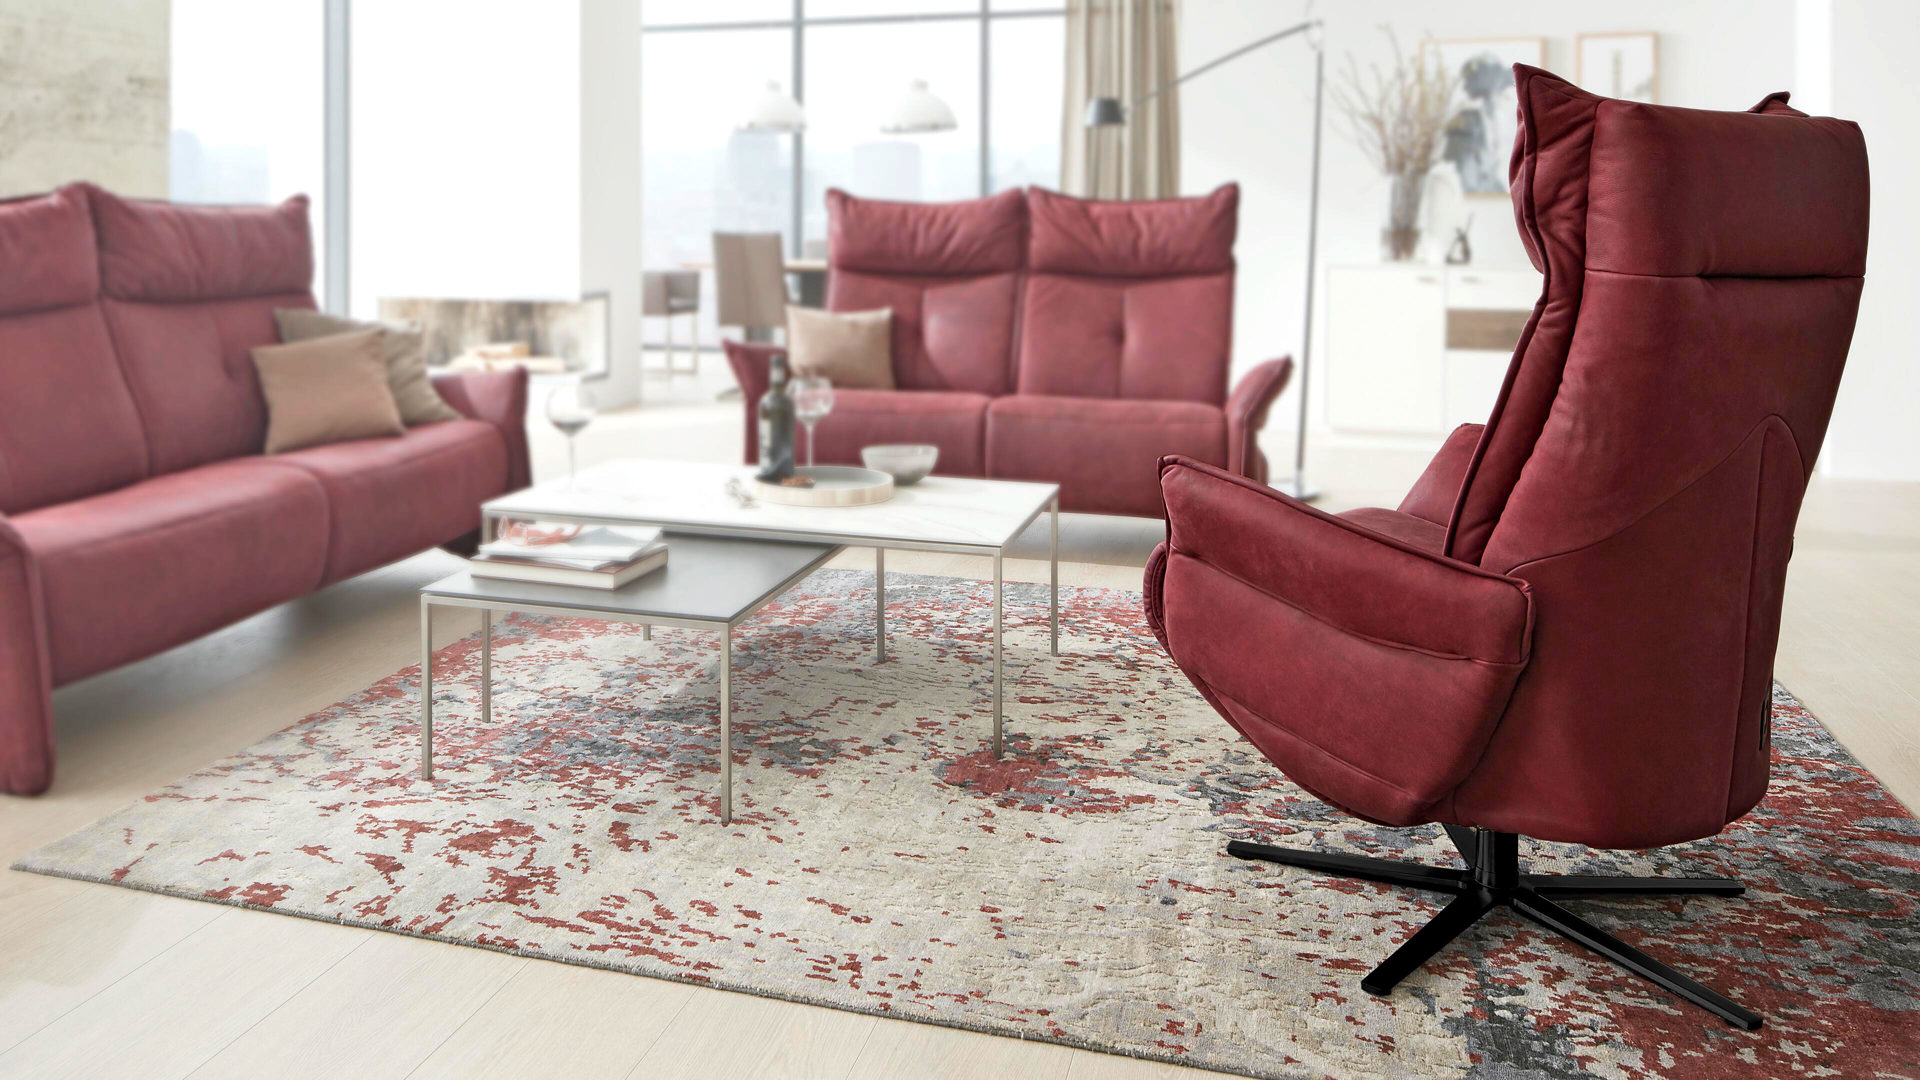 Relaxsessel Himolla | il aus Leder in Rot Interliving Sessel Serie 4504 – Easy-Swing-Sessel merlotfarbenes LongLife-Leder & anthrazitfarbener Sternfuß